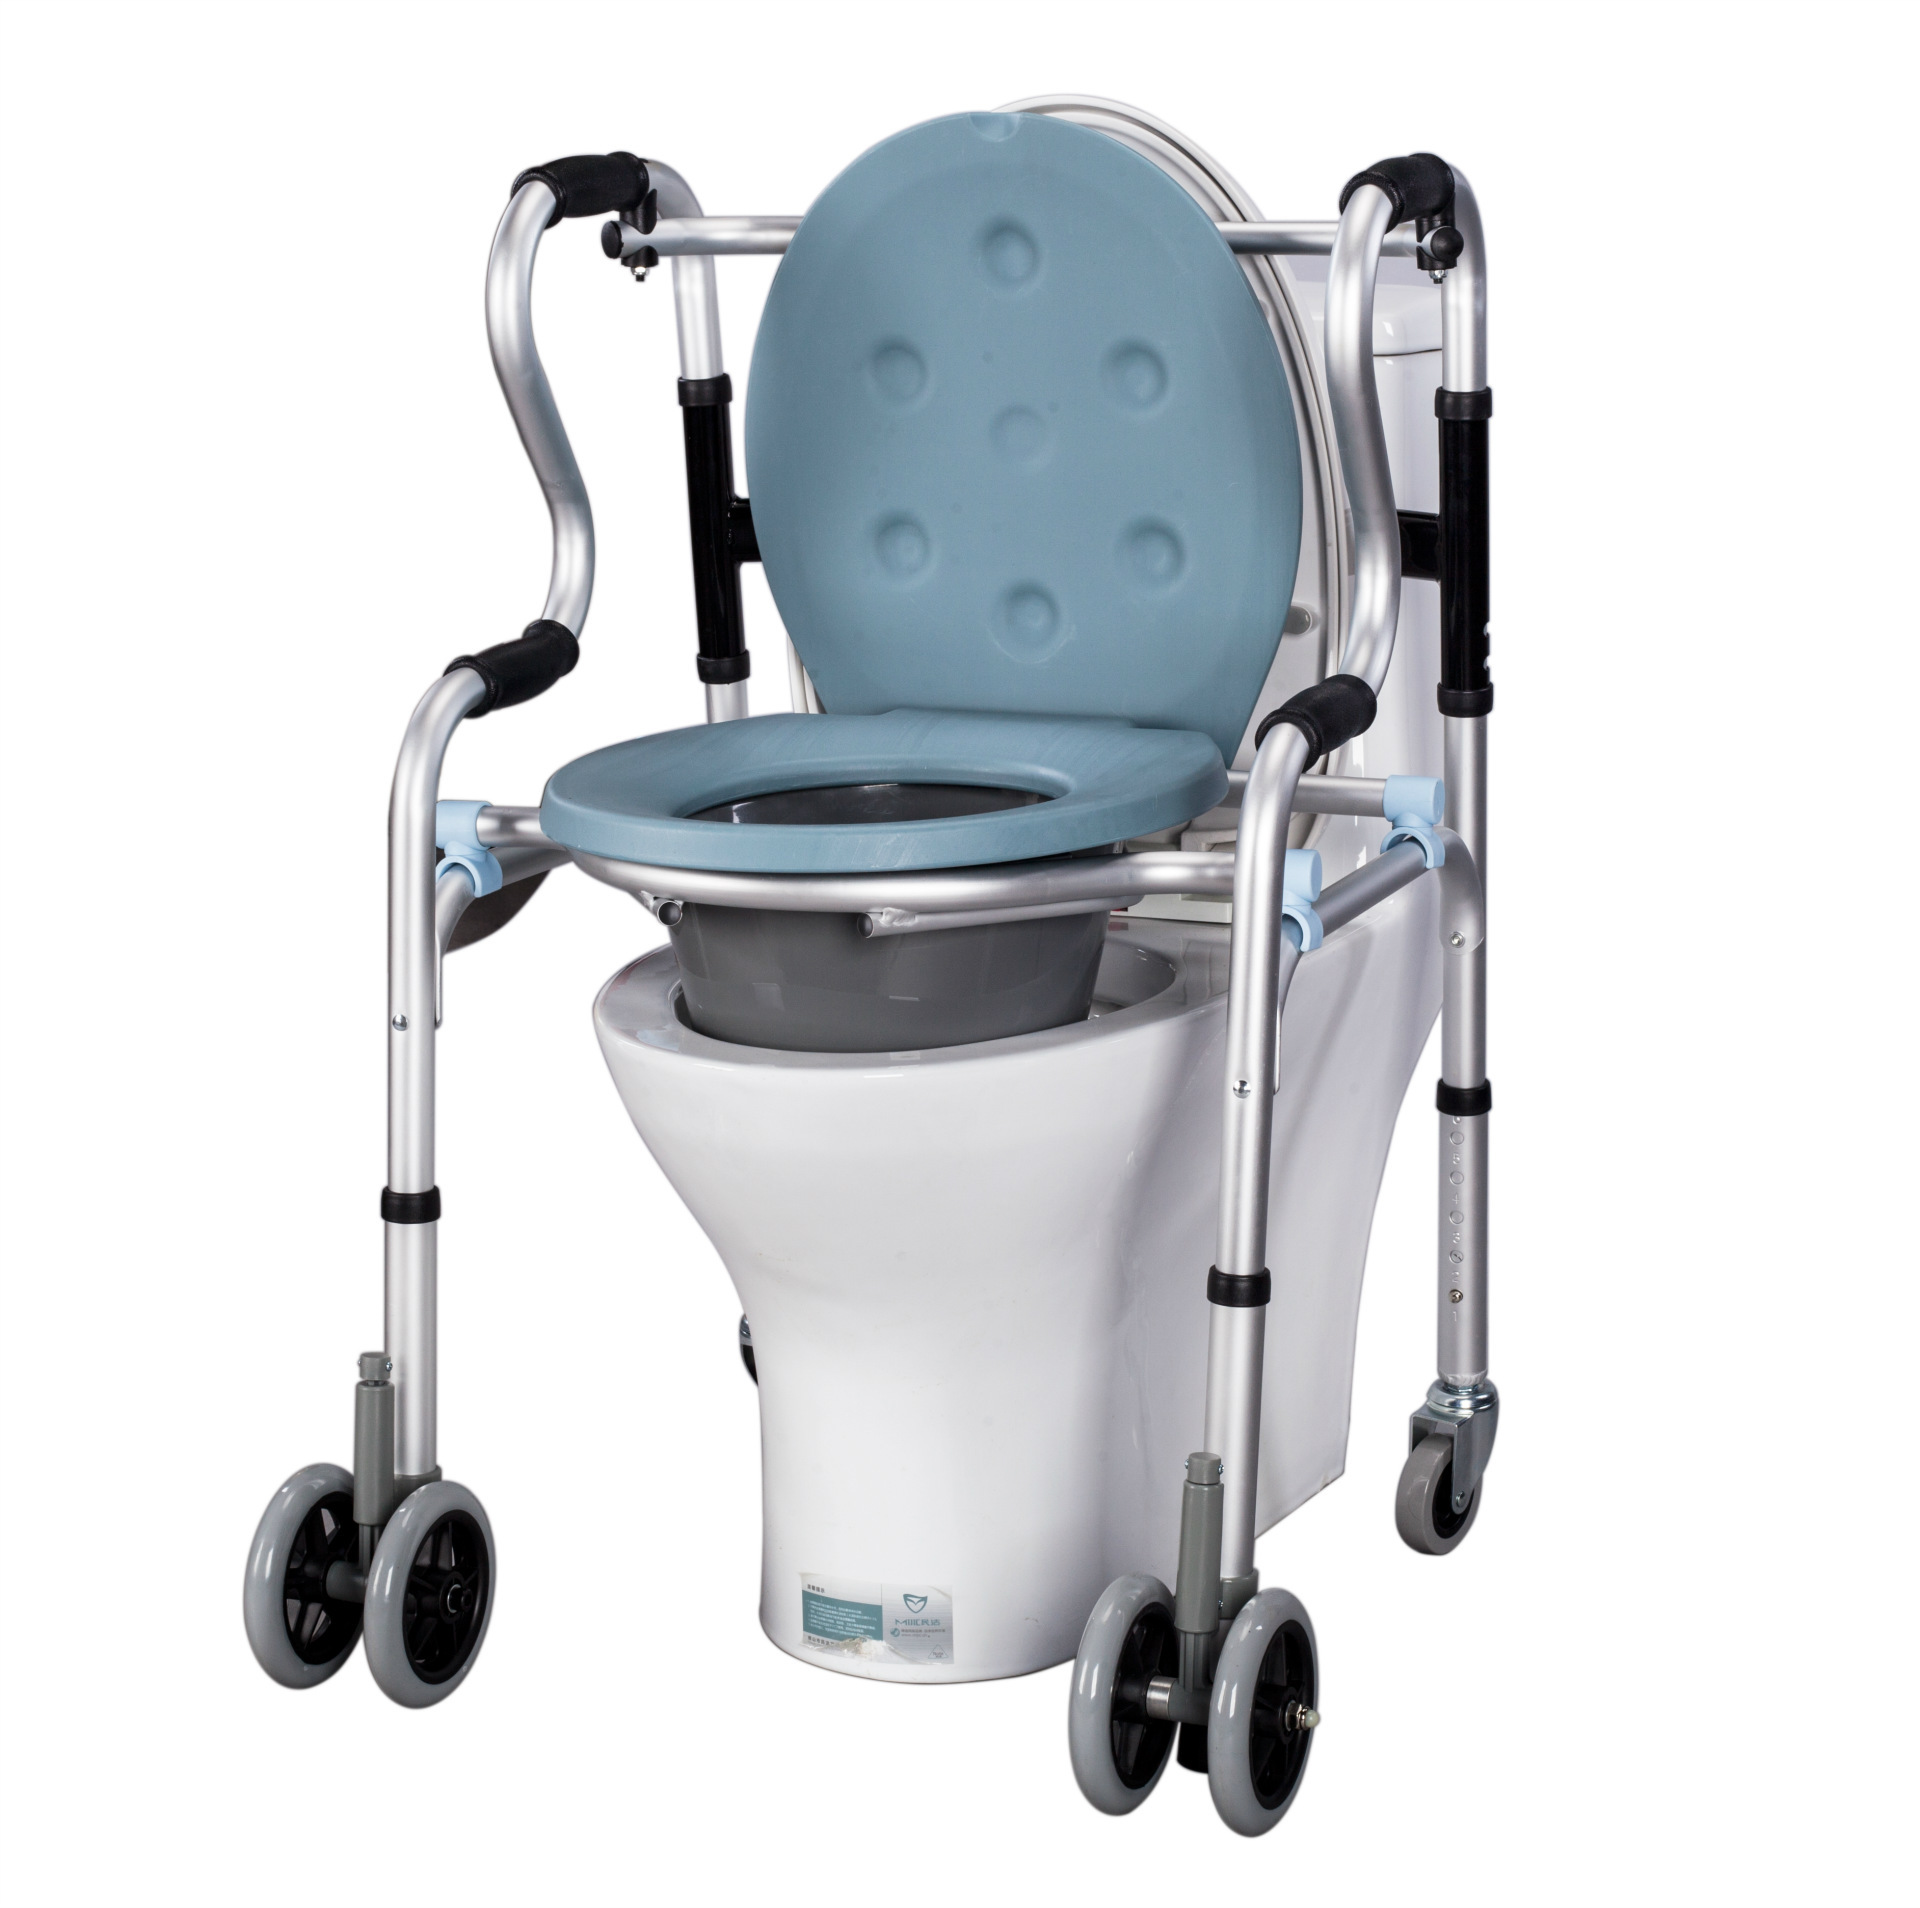 Toilet seat for the elderly foldable aluminum commode chair disabled ...